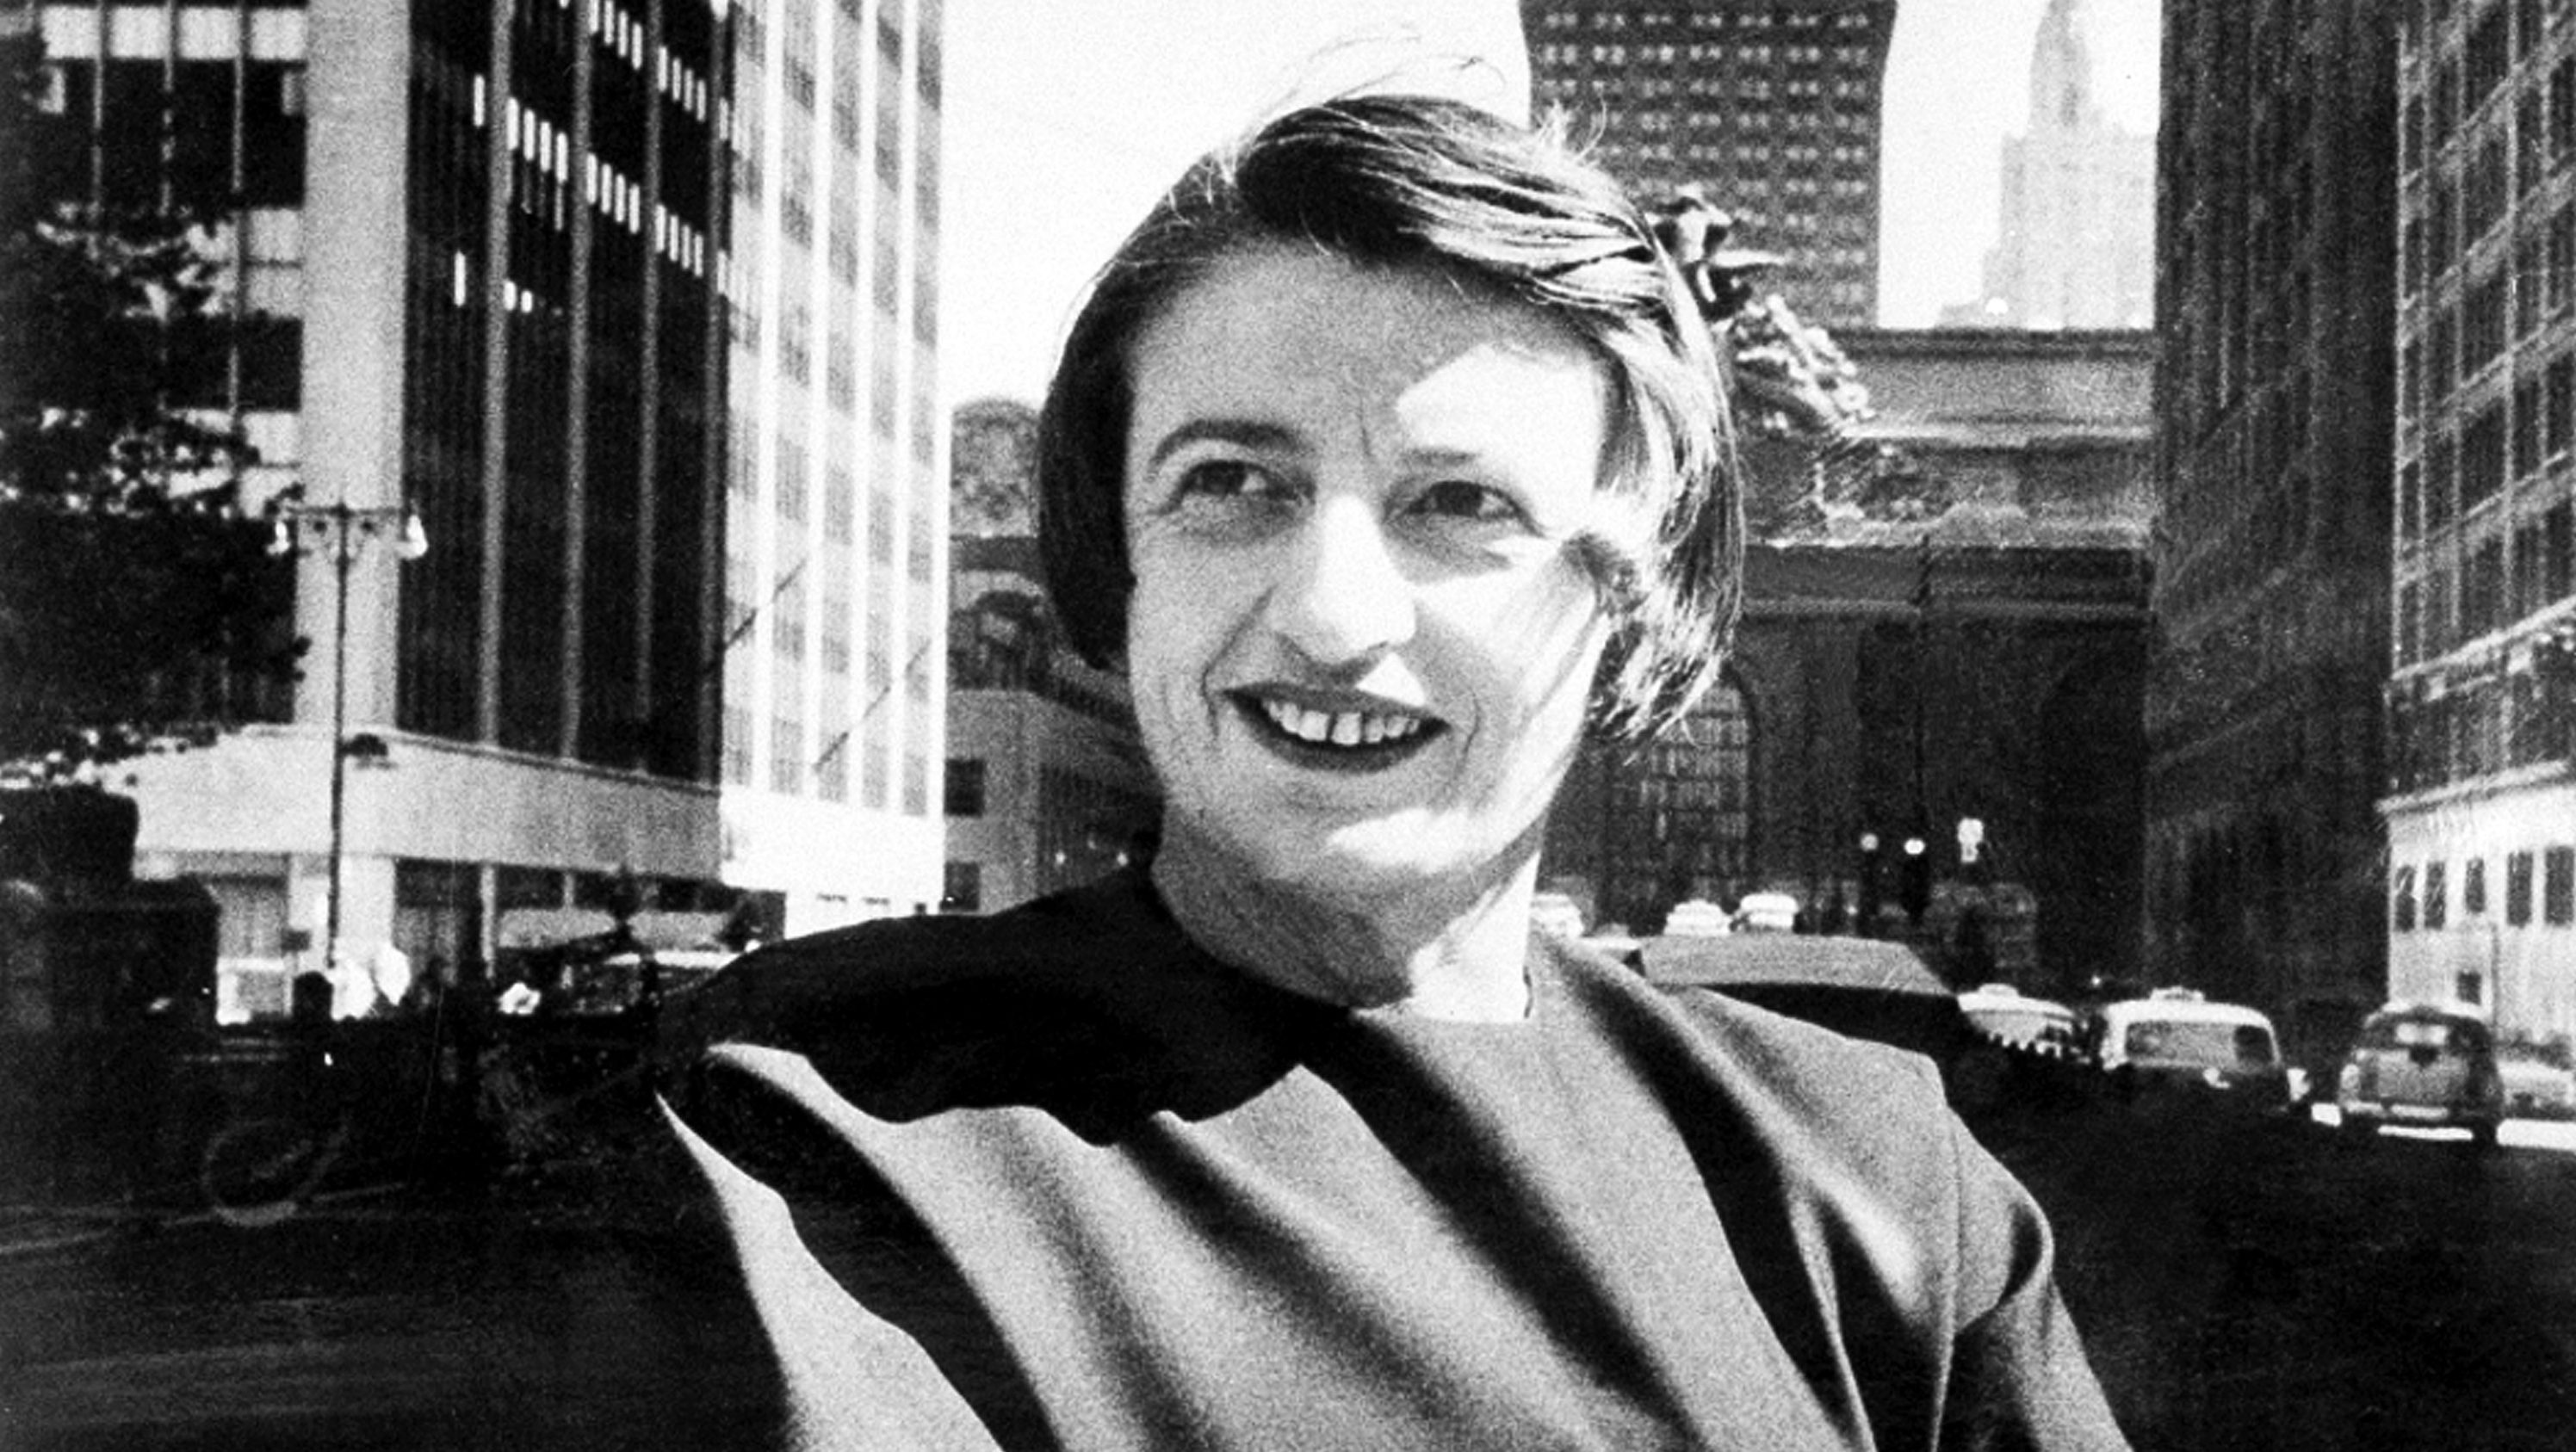 US Republican leaders love Ayn Rand's controversial philosophy—and are increasingly misinterpreting it